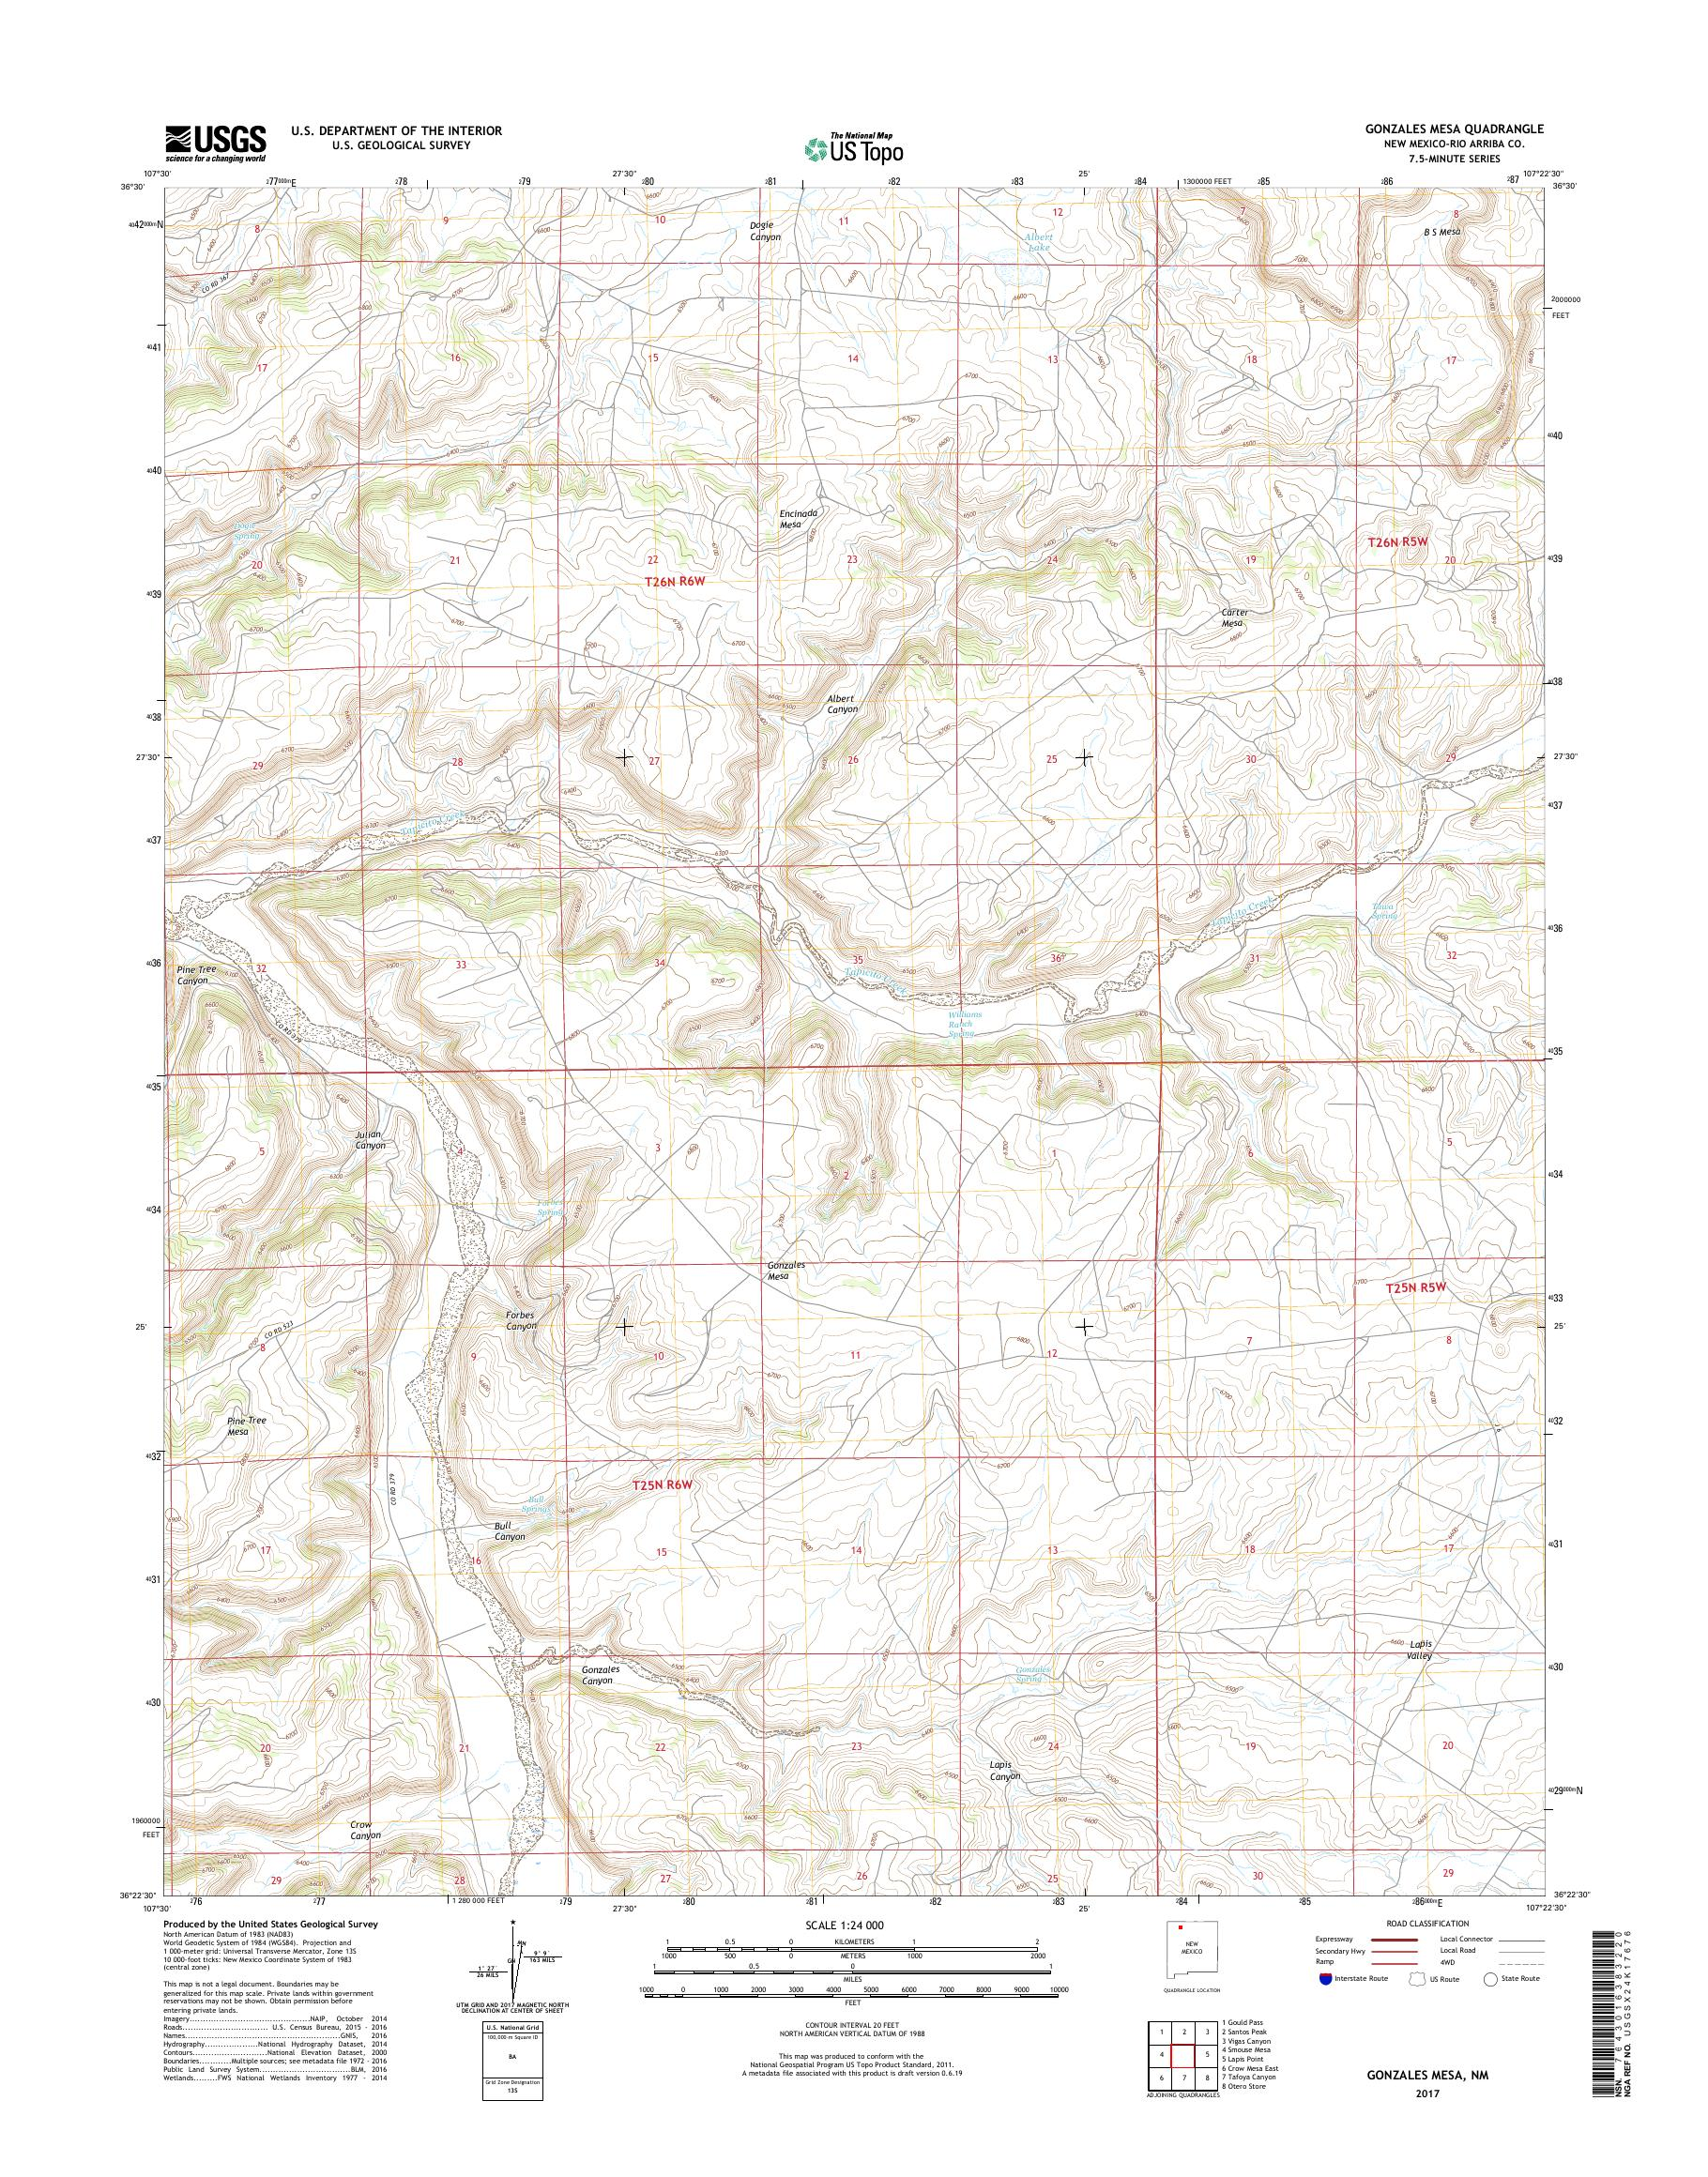 MyTopo Gonzales Mesa, New Mexico USGS Quad Topo Map on windcrest map, west baton rouge parish map, barataria map, franklinton map, norman map, mondragon map, evangeline map, gorda map, leesville map, zapata map, east feliciana map, amador map, ochiltree map, fifth ward map, grimaldi map, arevalo map, chualar map, obregon map, lajitas map,